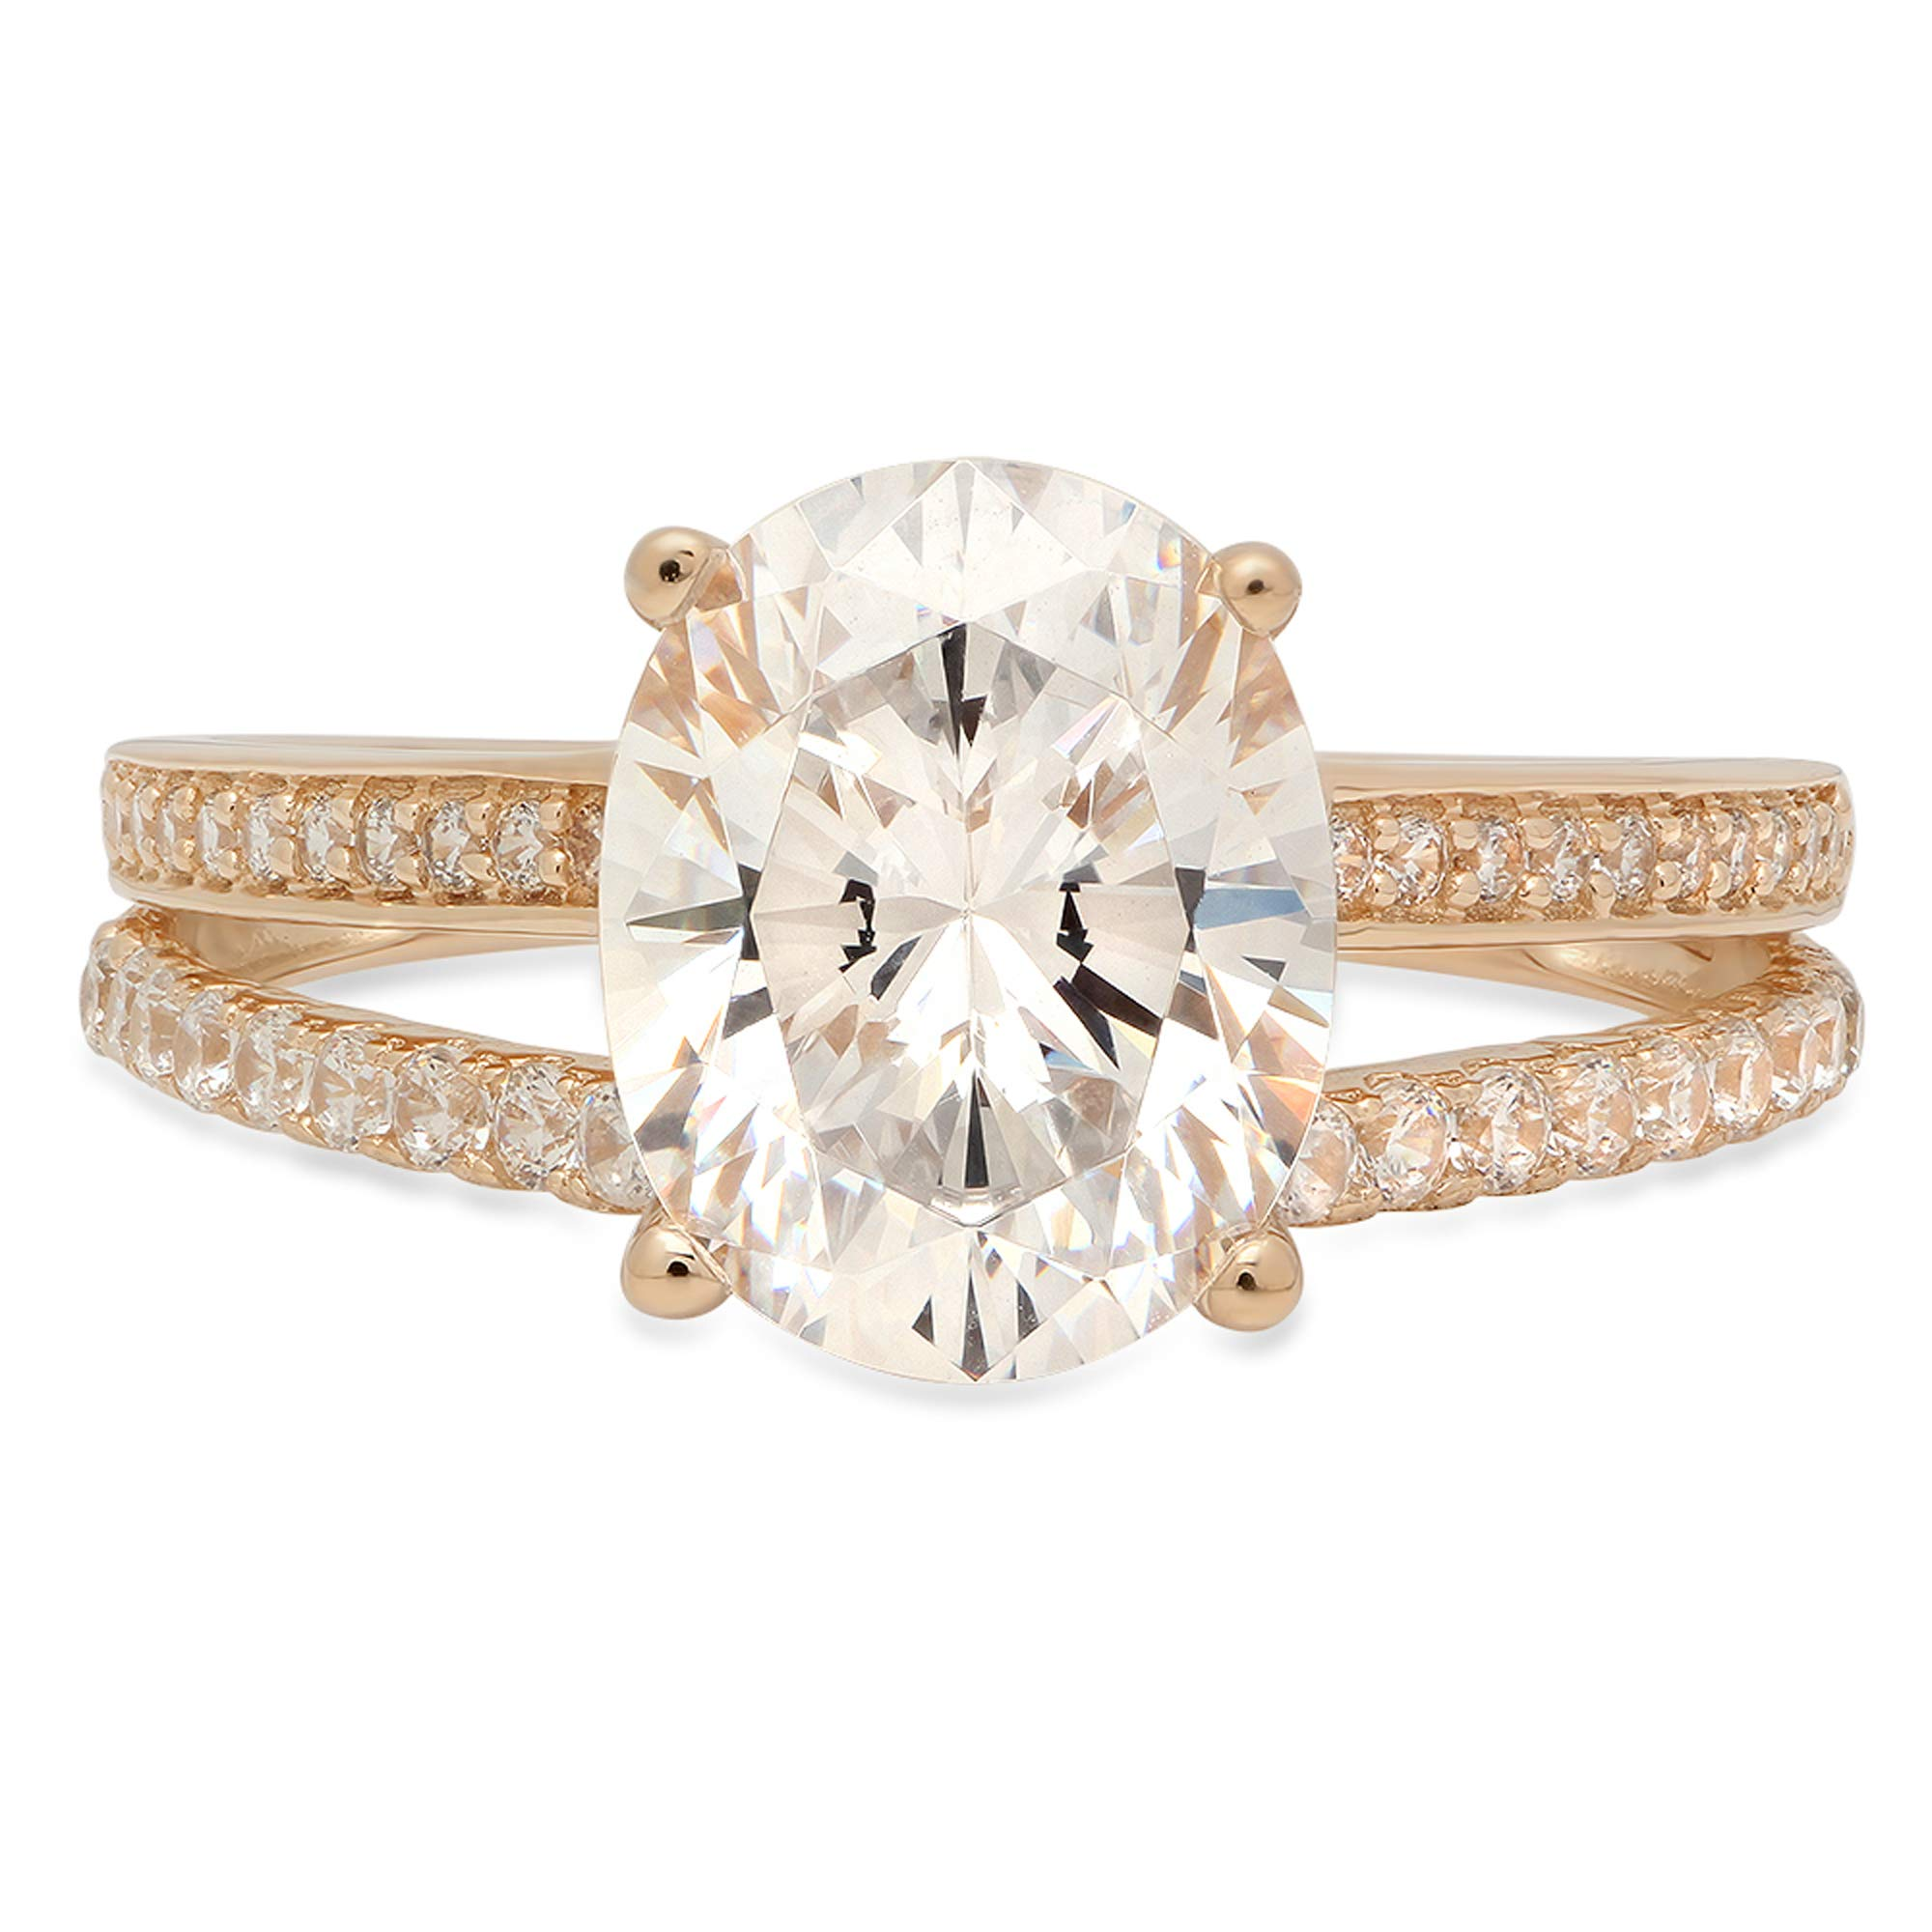 2.10 ct Oval Cut Solitaire Accent split shank Best Quality Moissanite Ideal VVS1 D & Simulated Diamond Engagement Promise Statement Anniversary Bridal Wedding Ring Solid 14k Yellow Gold, Size 7.5